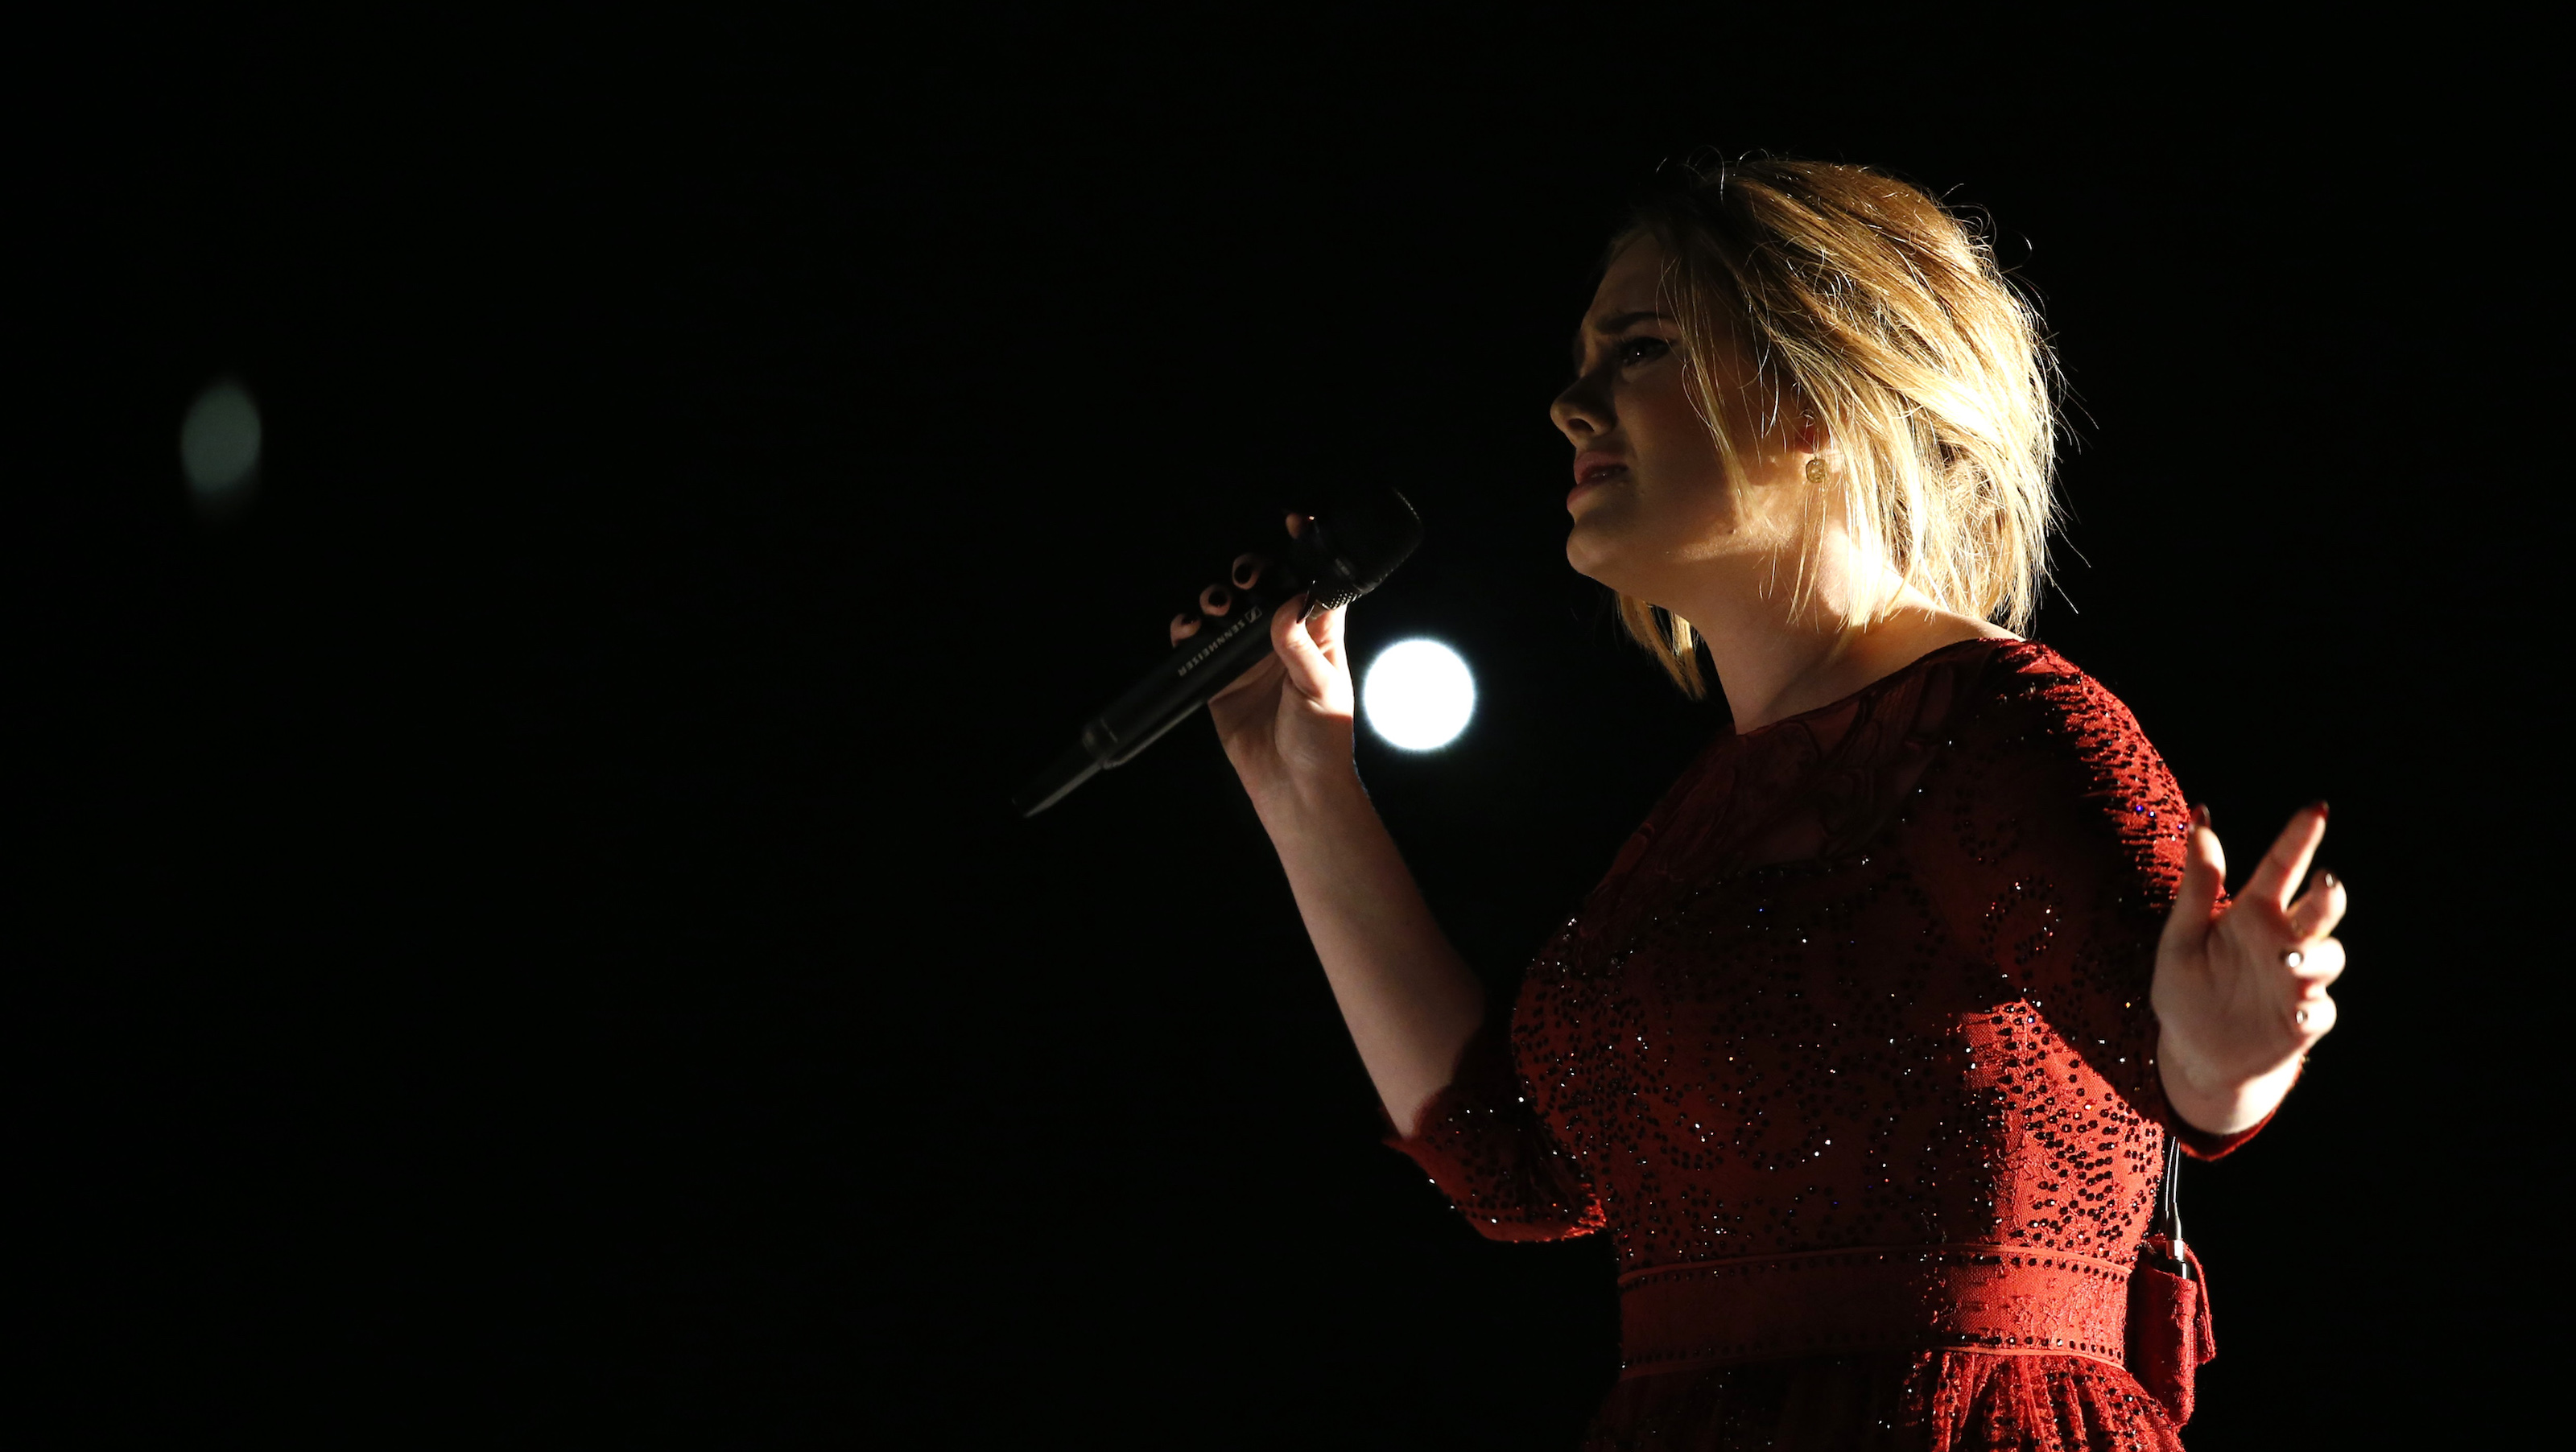 """Singer Adele performs """"All I Ask"""" on stage at the 58th Grammy Awards in Los Angeles, California February 15, 2016.  REUTERS/Mario Anzuoni - RTX273PB"""